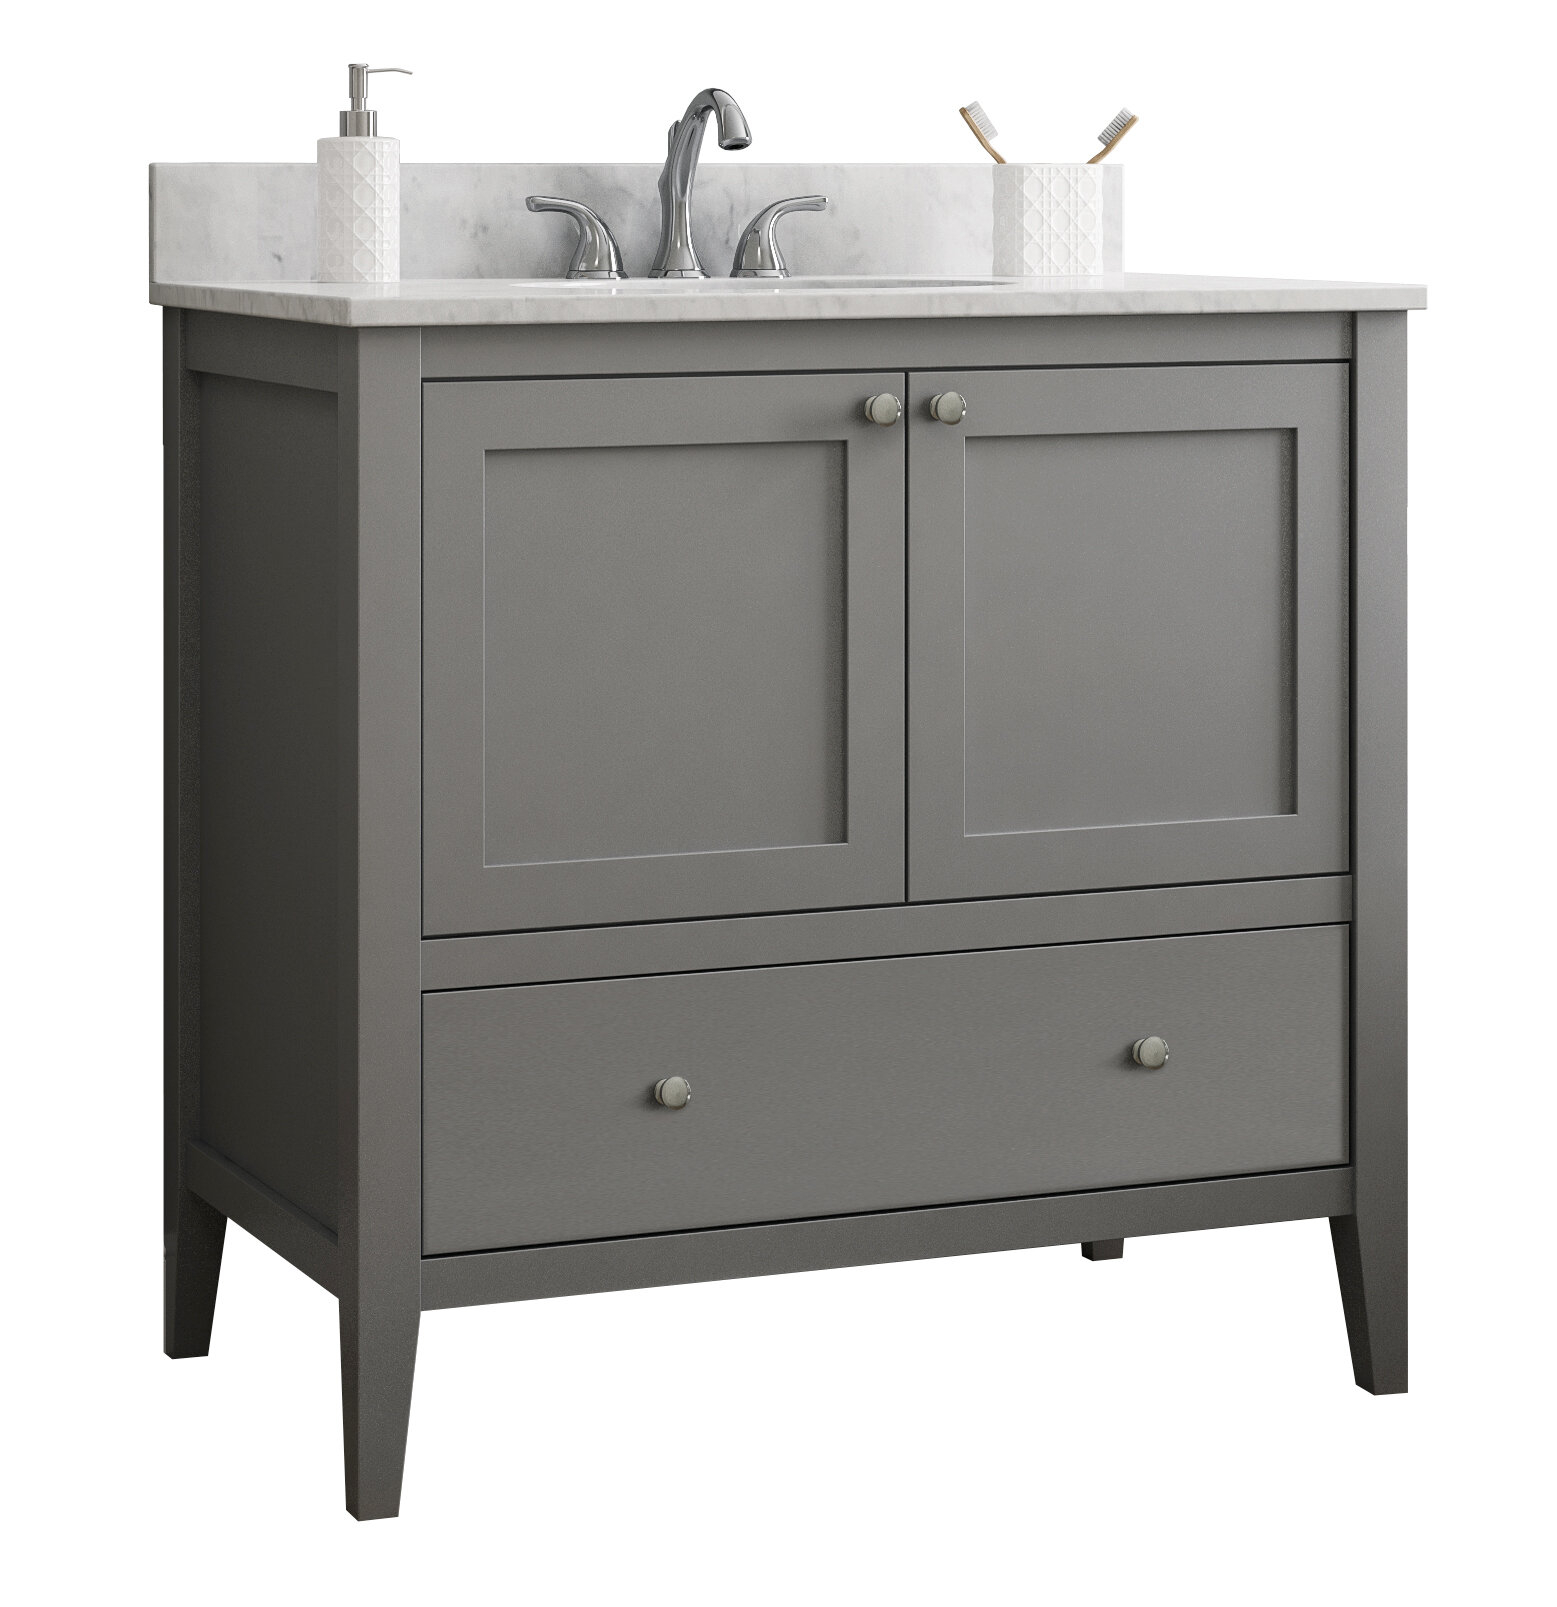 Cnc Cabinetry Vanguard 36 Single Bathroom Vanity Base Only inside measurements 1557 X 1607